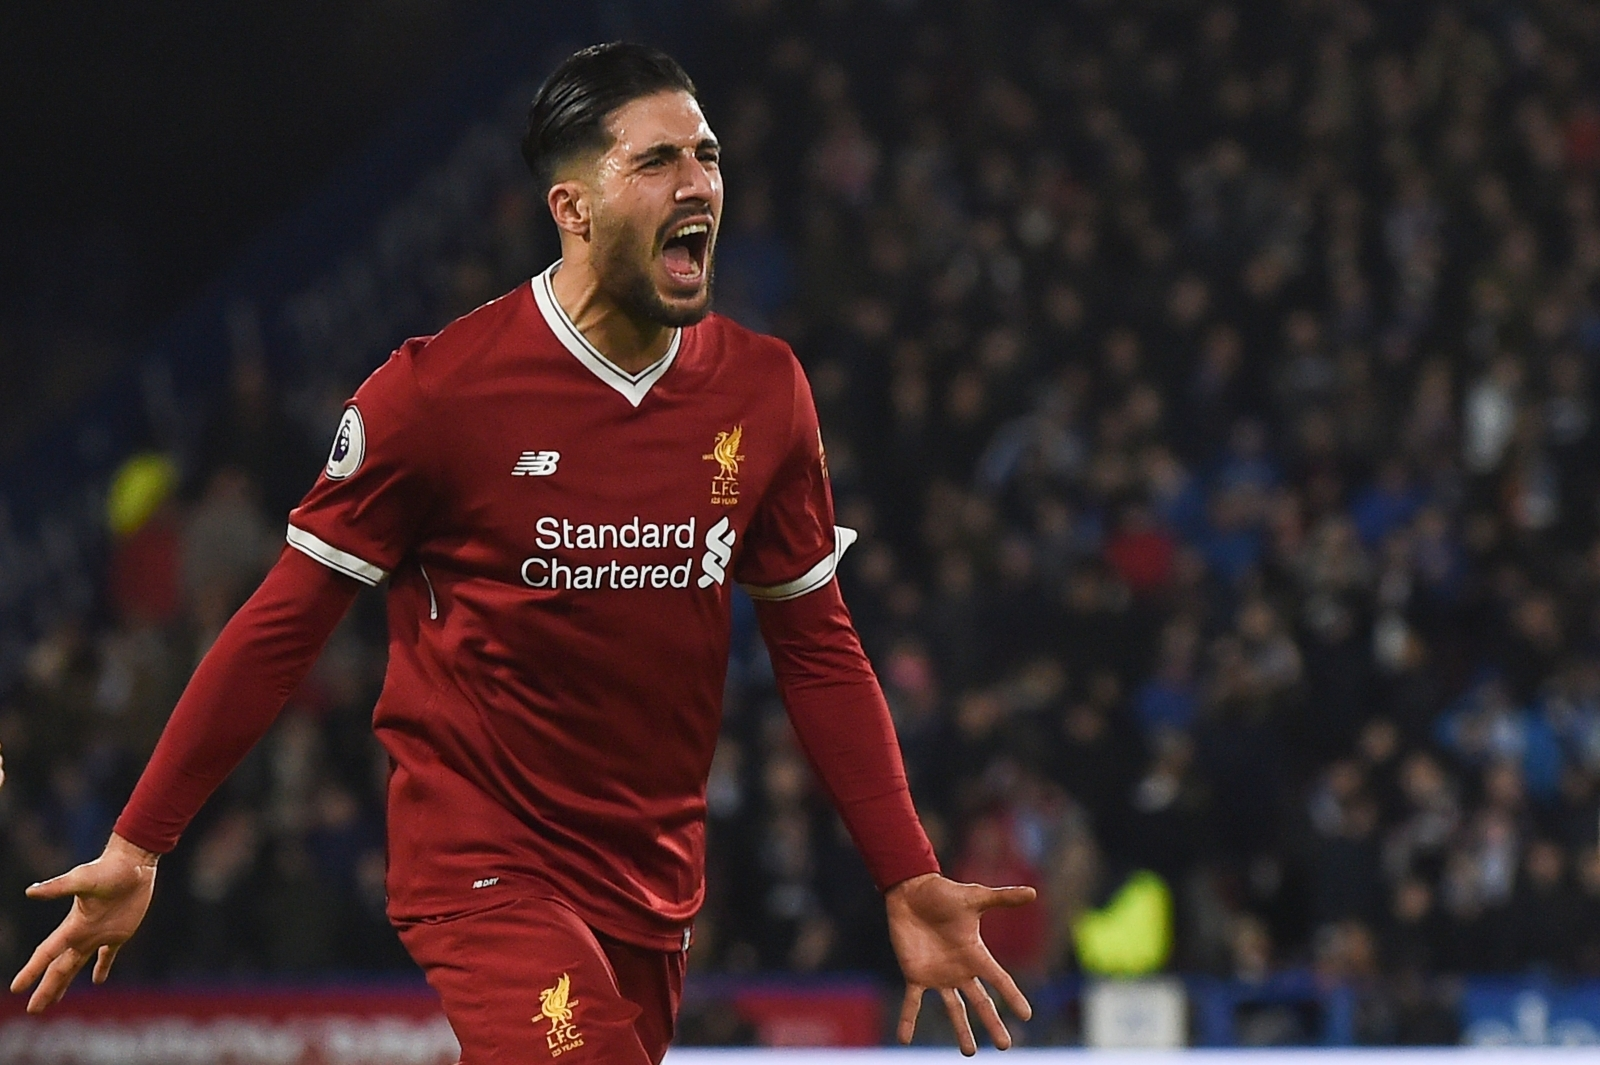 'Emre Can Free Transfer To Juventus Already A Done Deal', Claims Agent